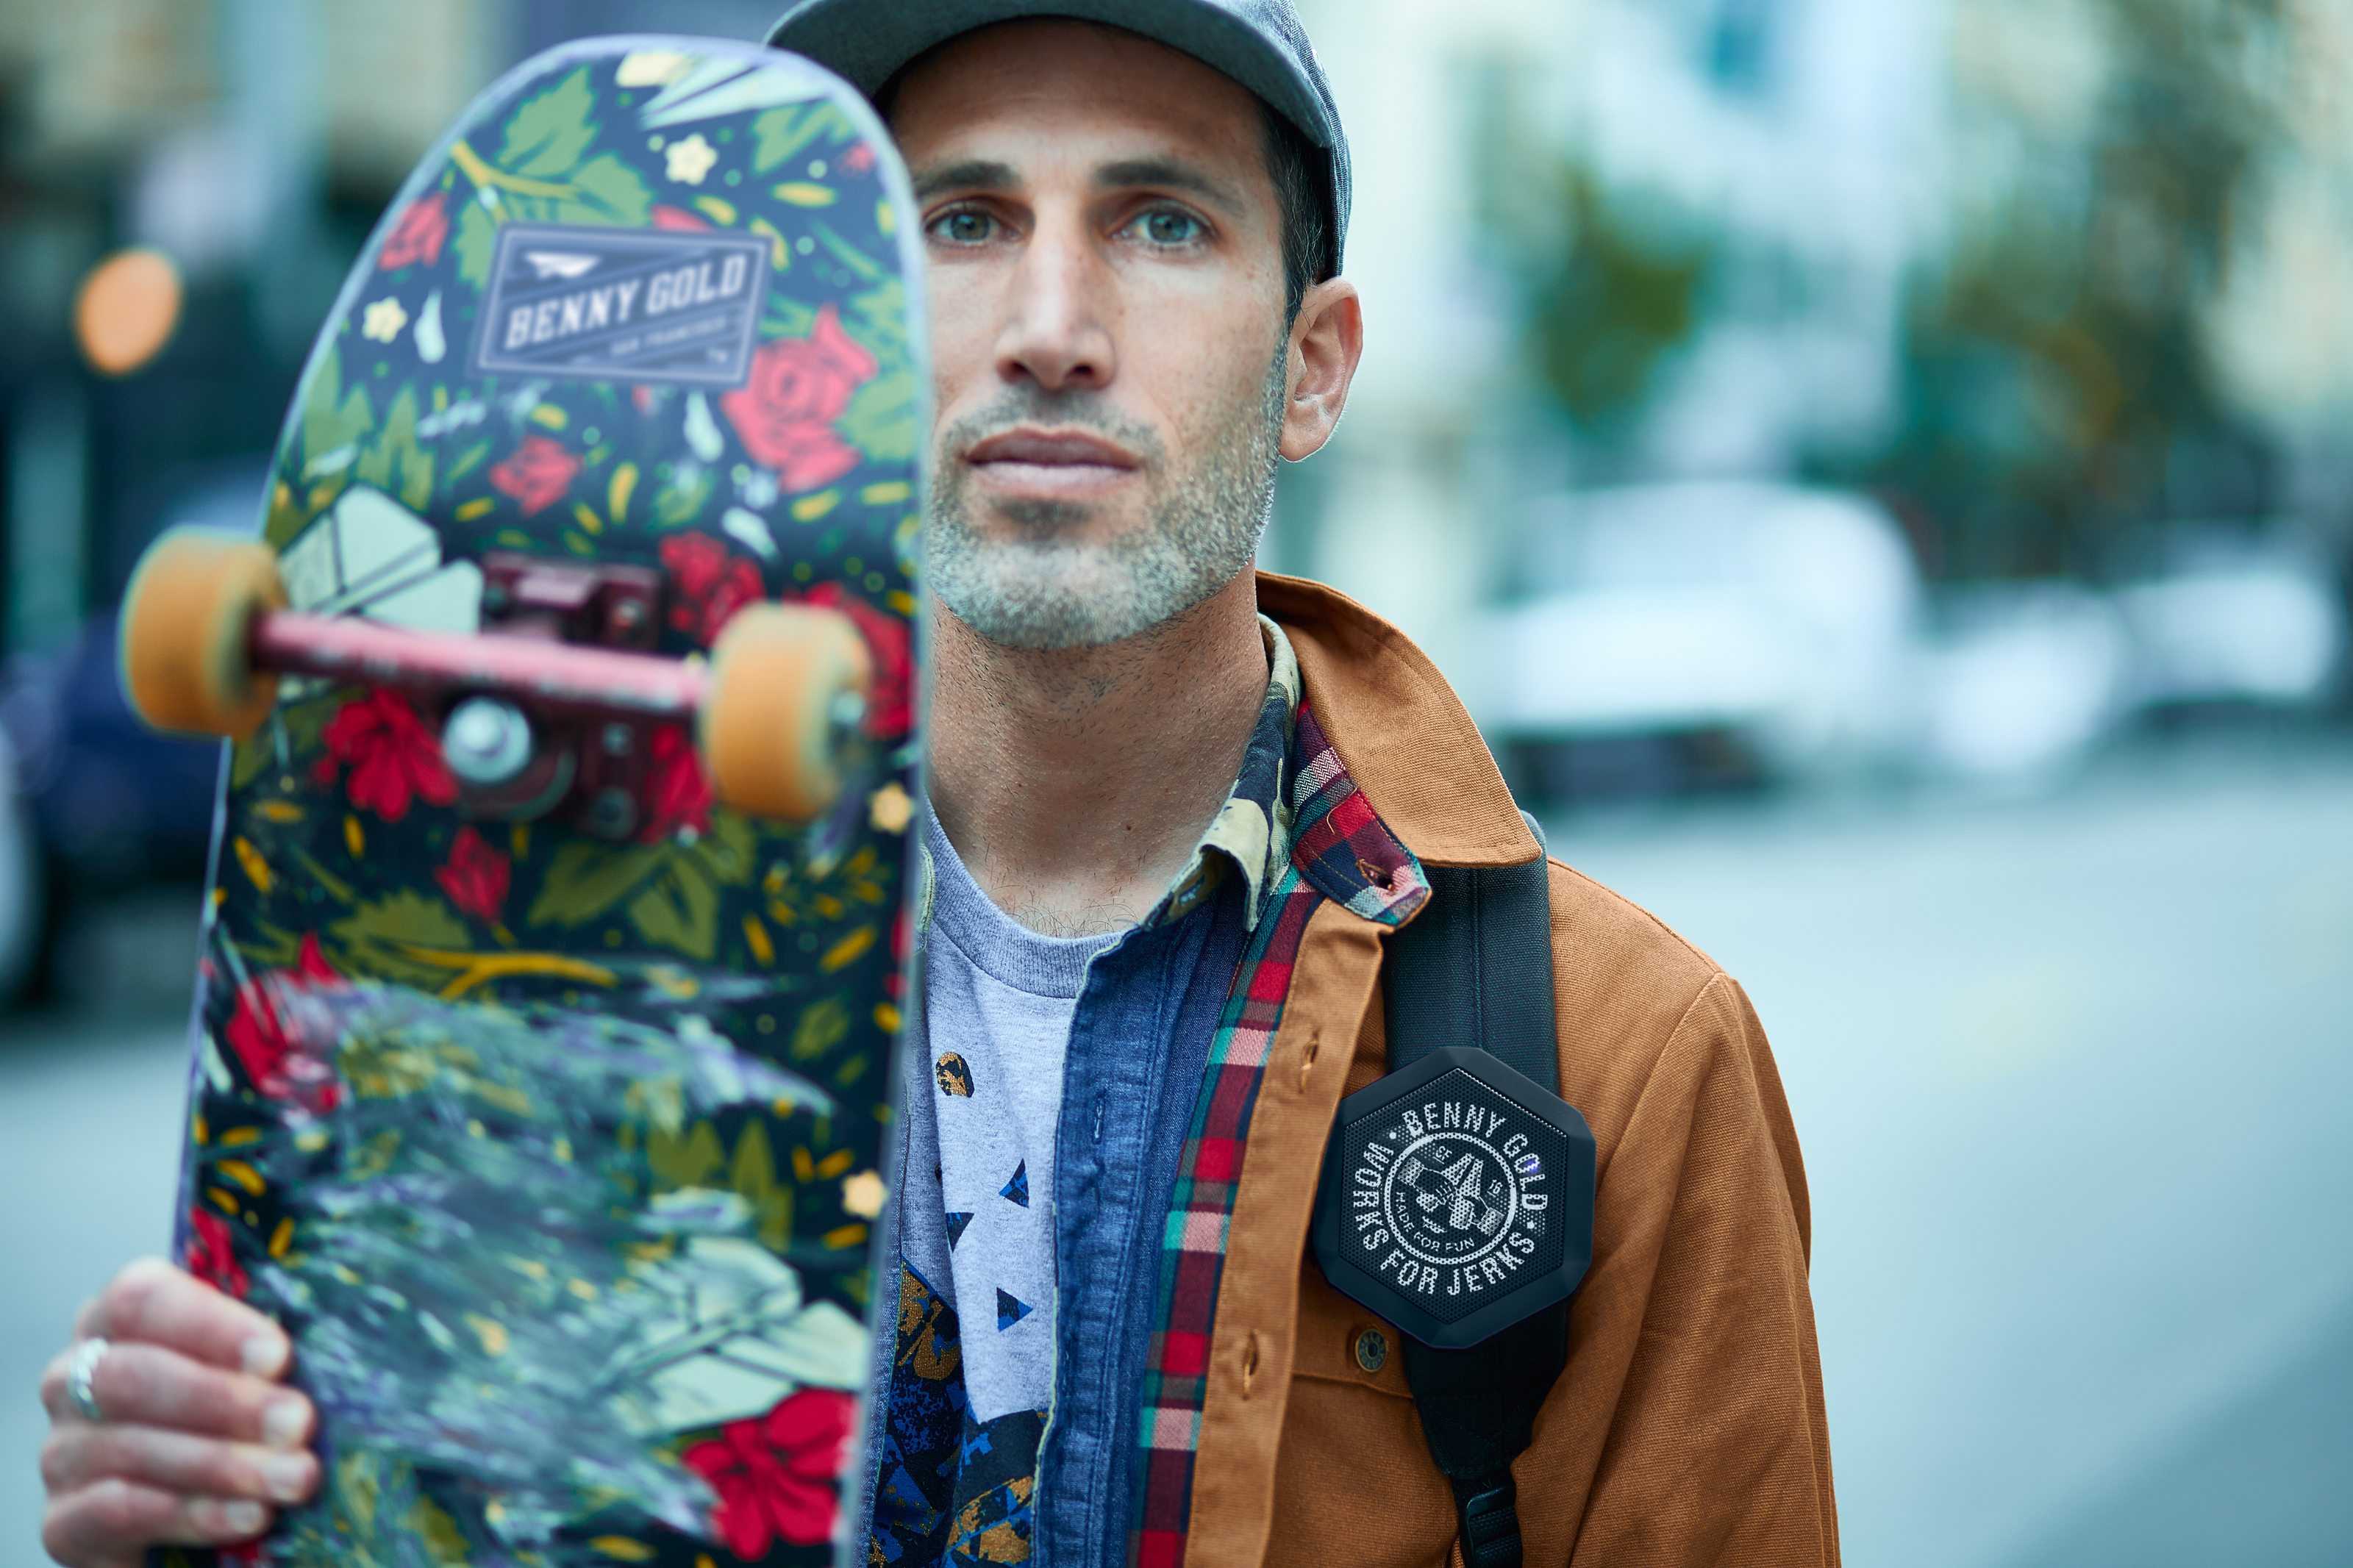 Benny Gold holding up skateboard and has boombotix speaker strapped to backpack